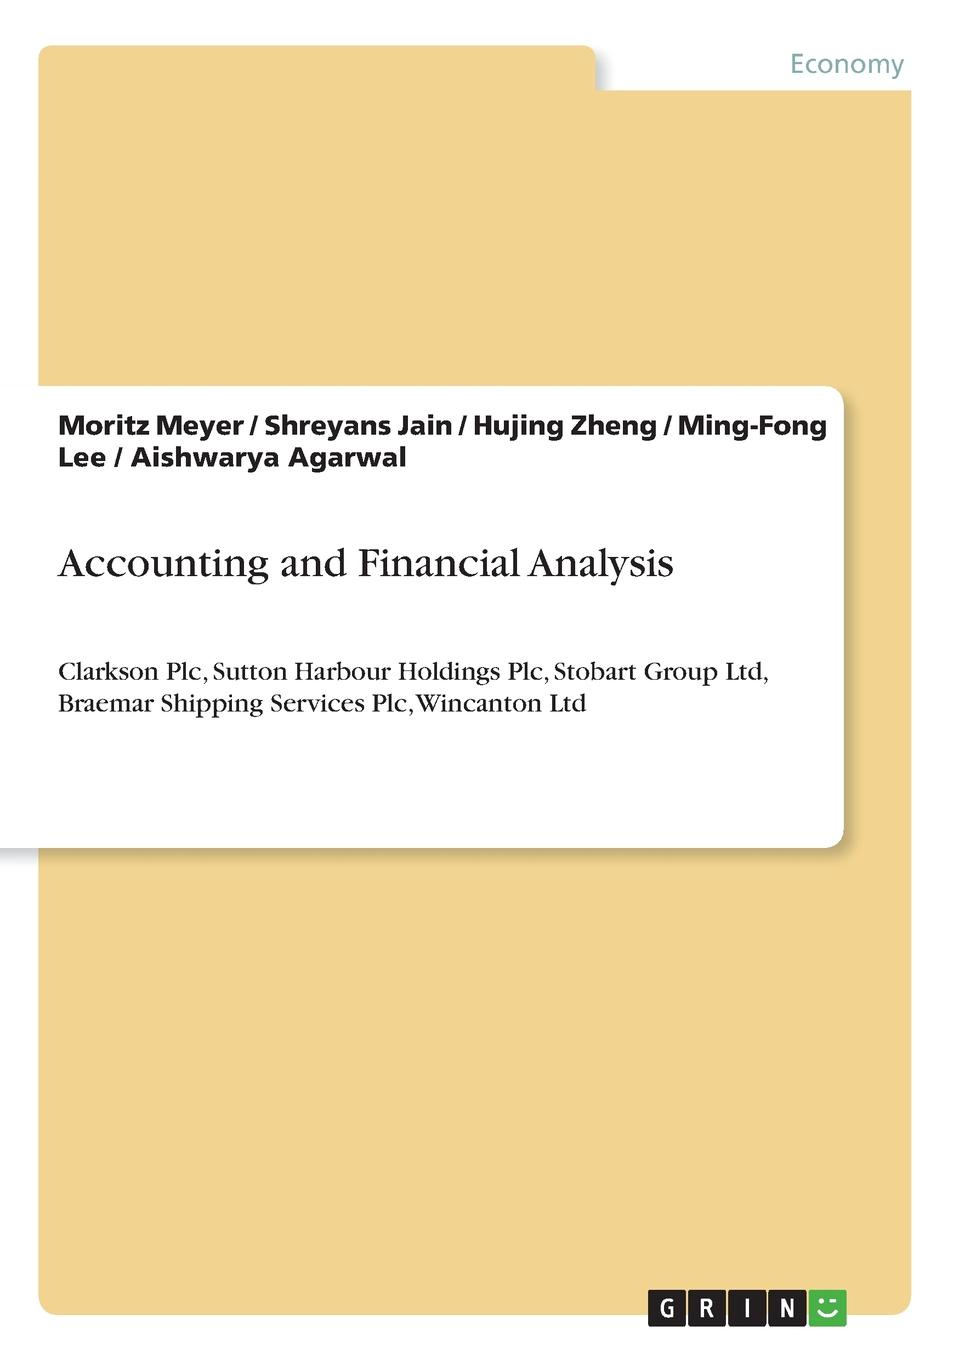 Moritz Meyer, Shreyans Jain, Hujing Zheng Accounting and Financial Analysis fuad akhundov reductive investment analysis